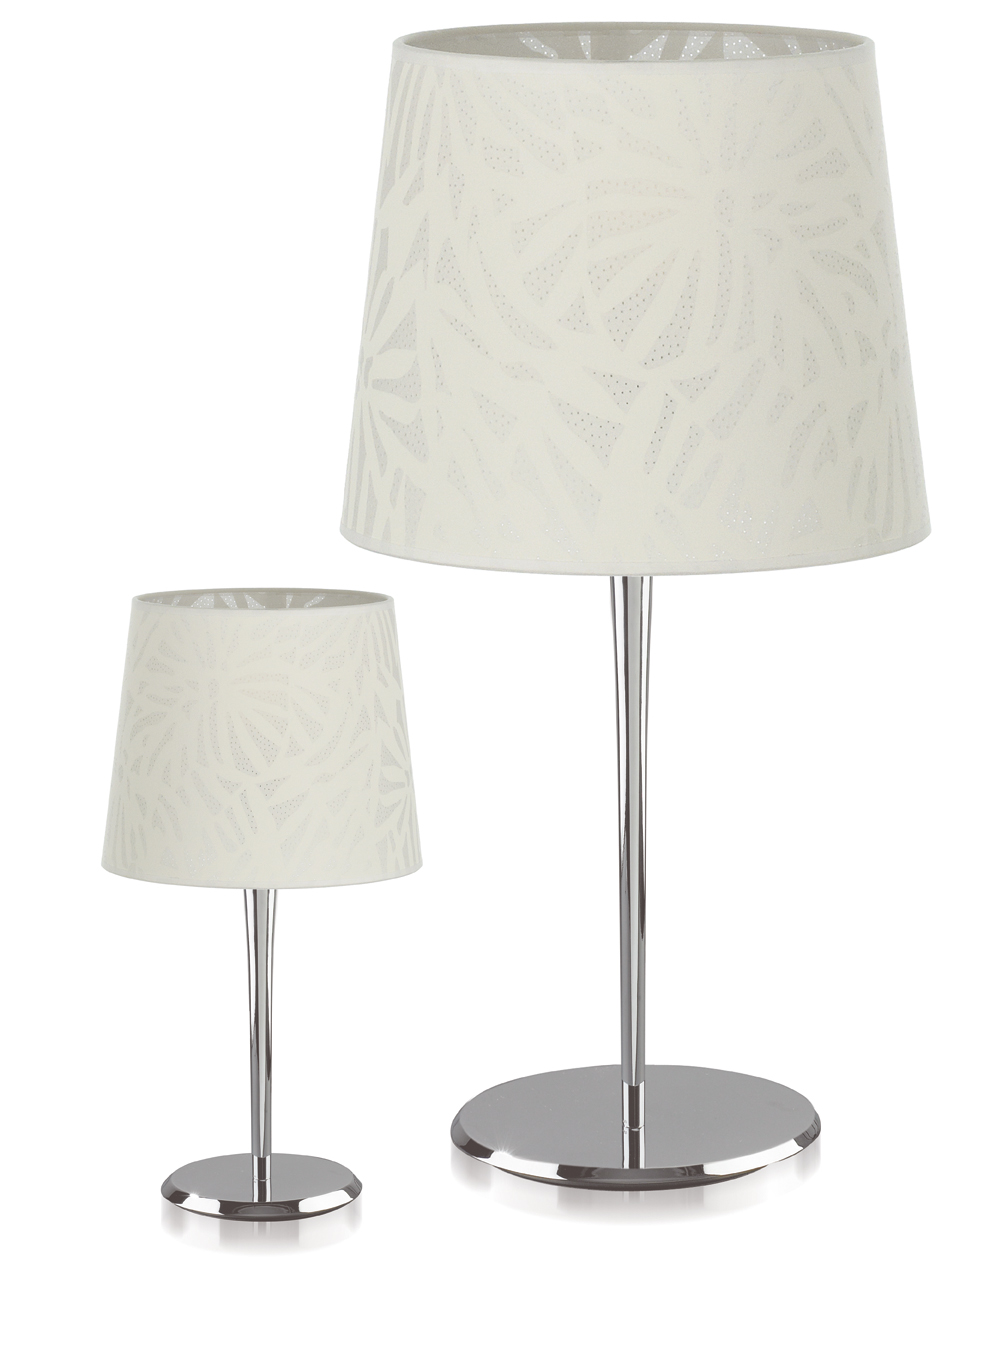 Donna Table Lamp Small 1xE27.Tejido lampshade type to Algodon